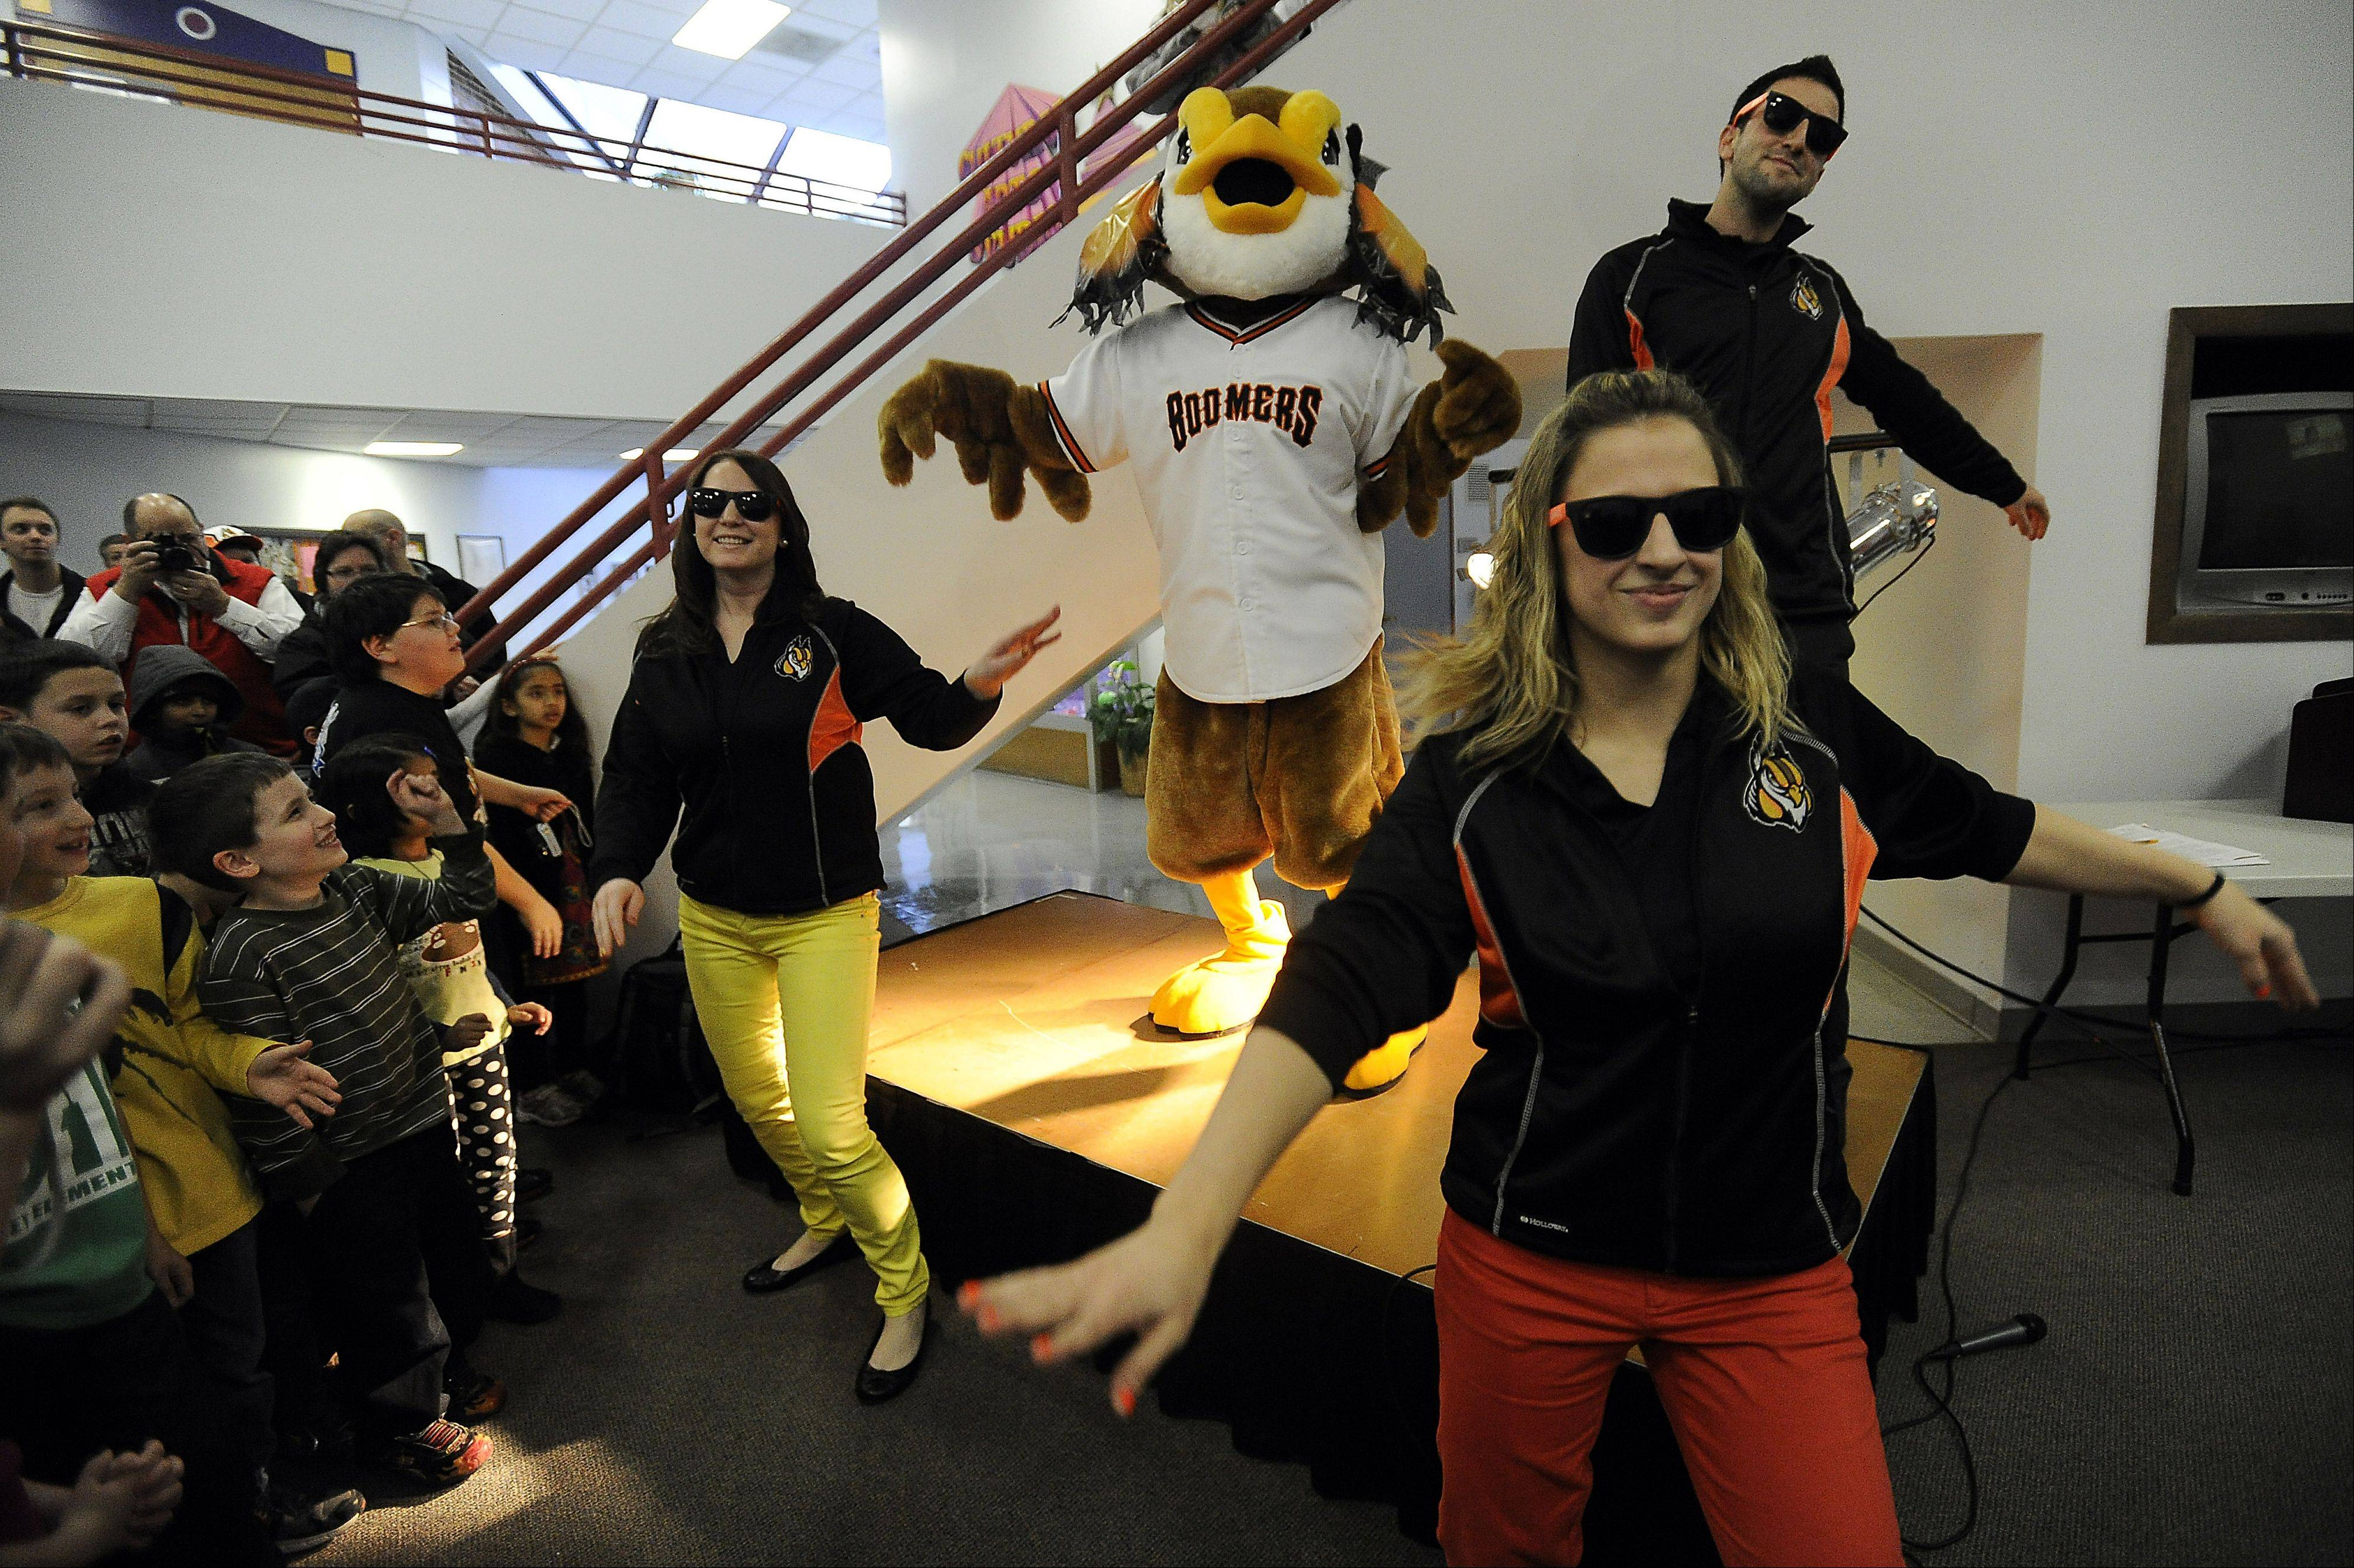 Carly Salczynski, Sara Ronano and Andy Viano, general manager and president of the Schaumburg Boomers, dance along with Coop at the unveiling Thursday.